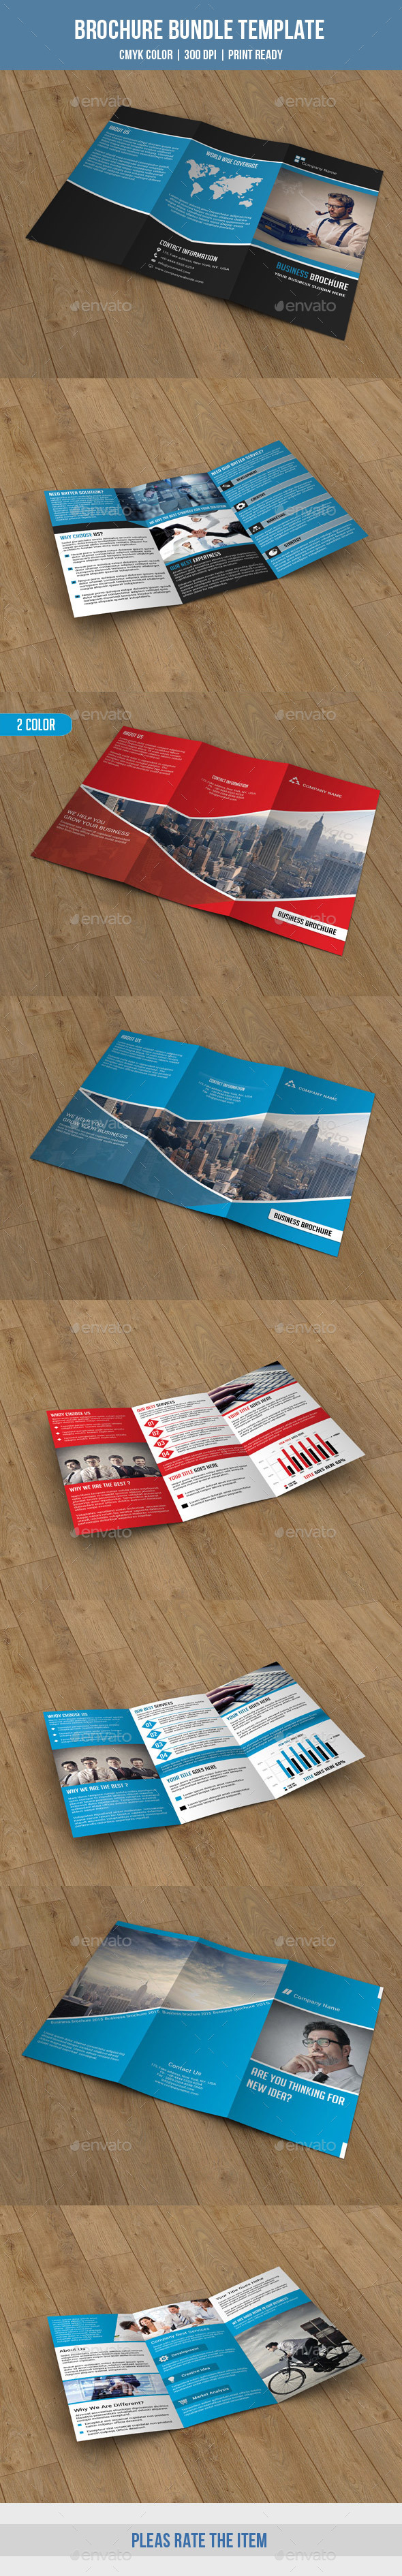 GraphicRiver 3 in 1 Business Trifold Bundle-V03 9929670